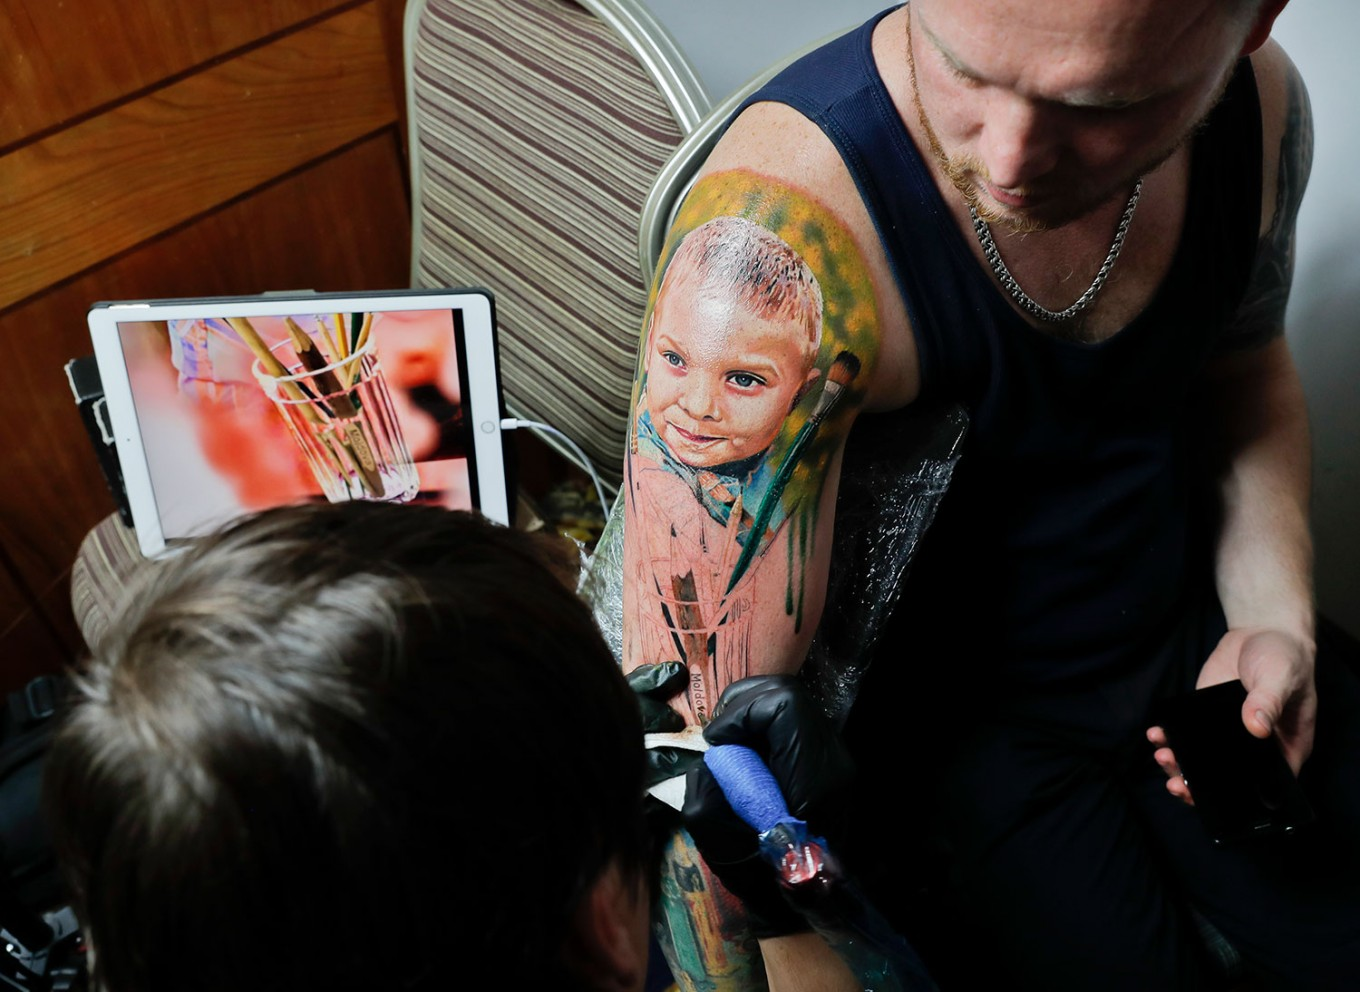 In this picture taken on Sunday, Oct. 16, 2016, Serghei, from the Republic of Moldova, gets a tattoo showing his son Chiril applied to his hand, during the International Tattoo Convention Bucharest 2016 in Bucharest, Romania. AP Photo/Vadim Ghirda